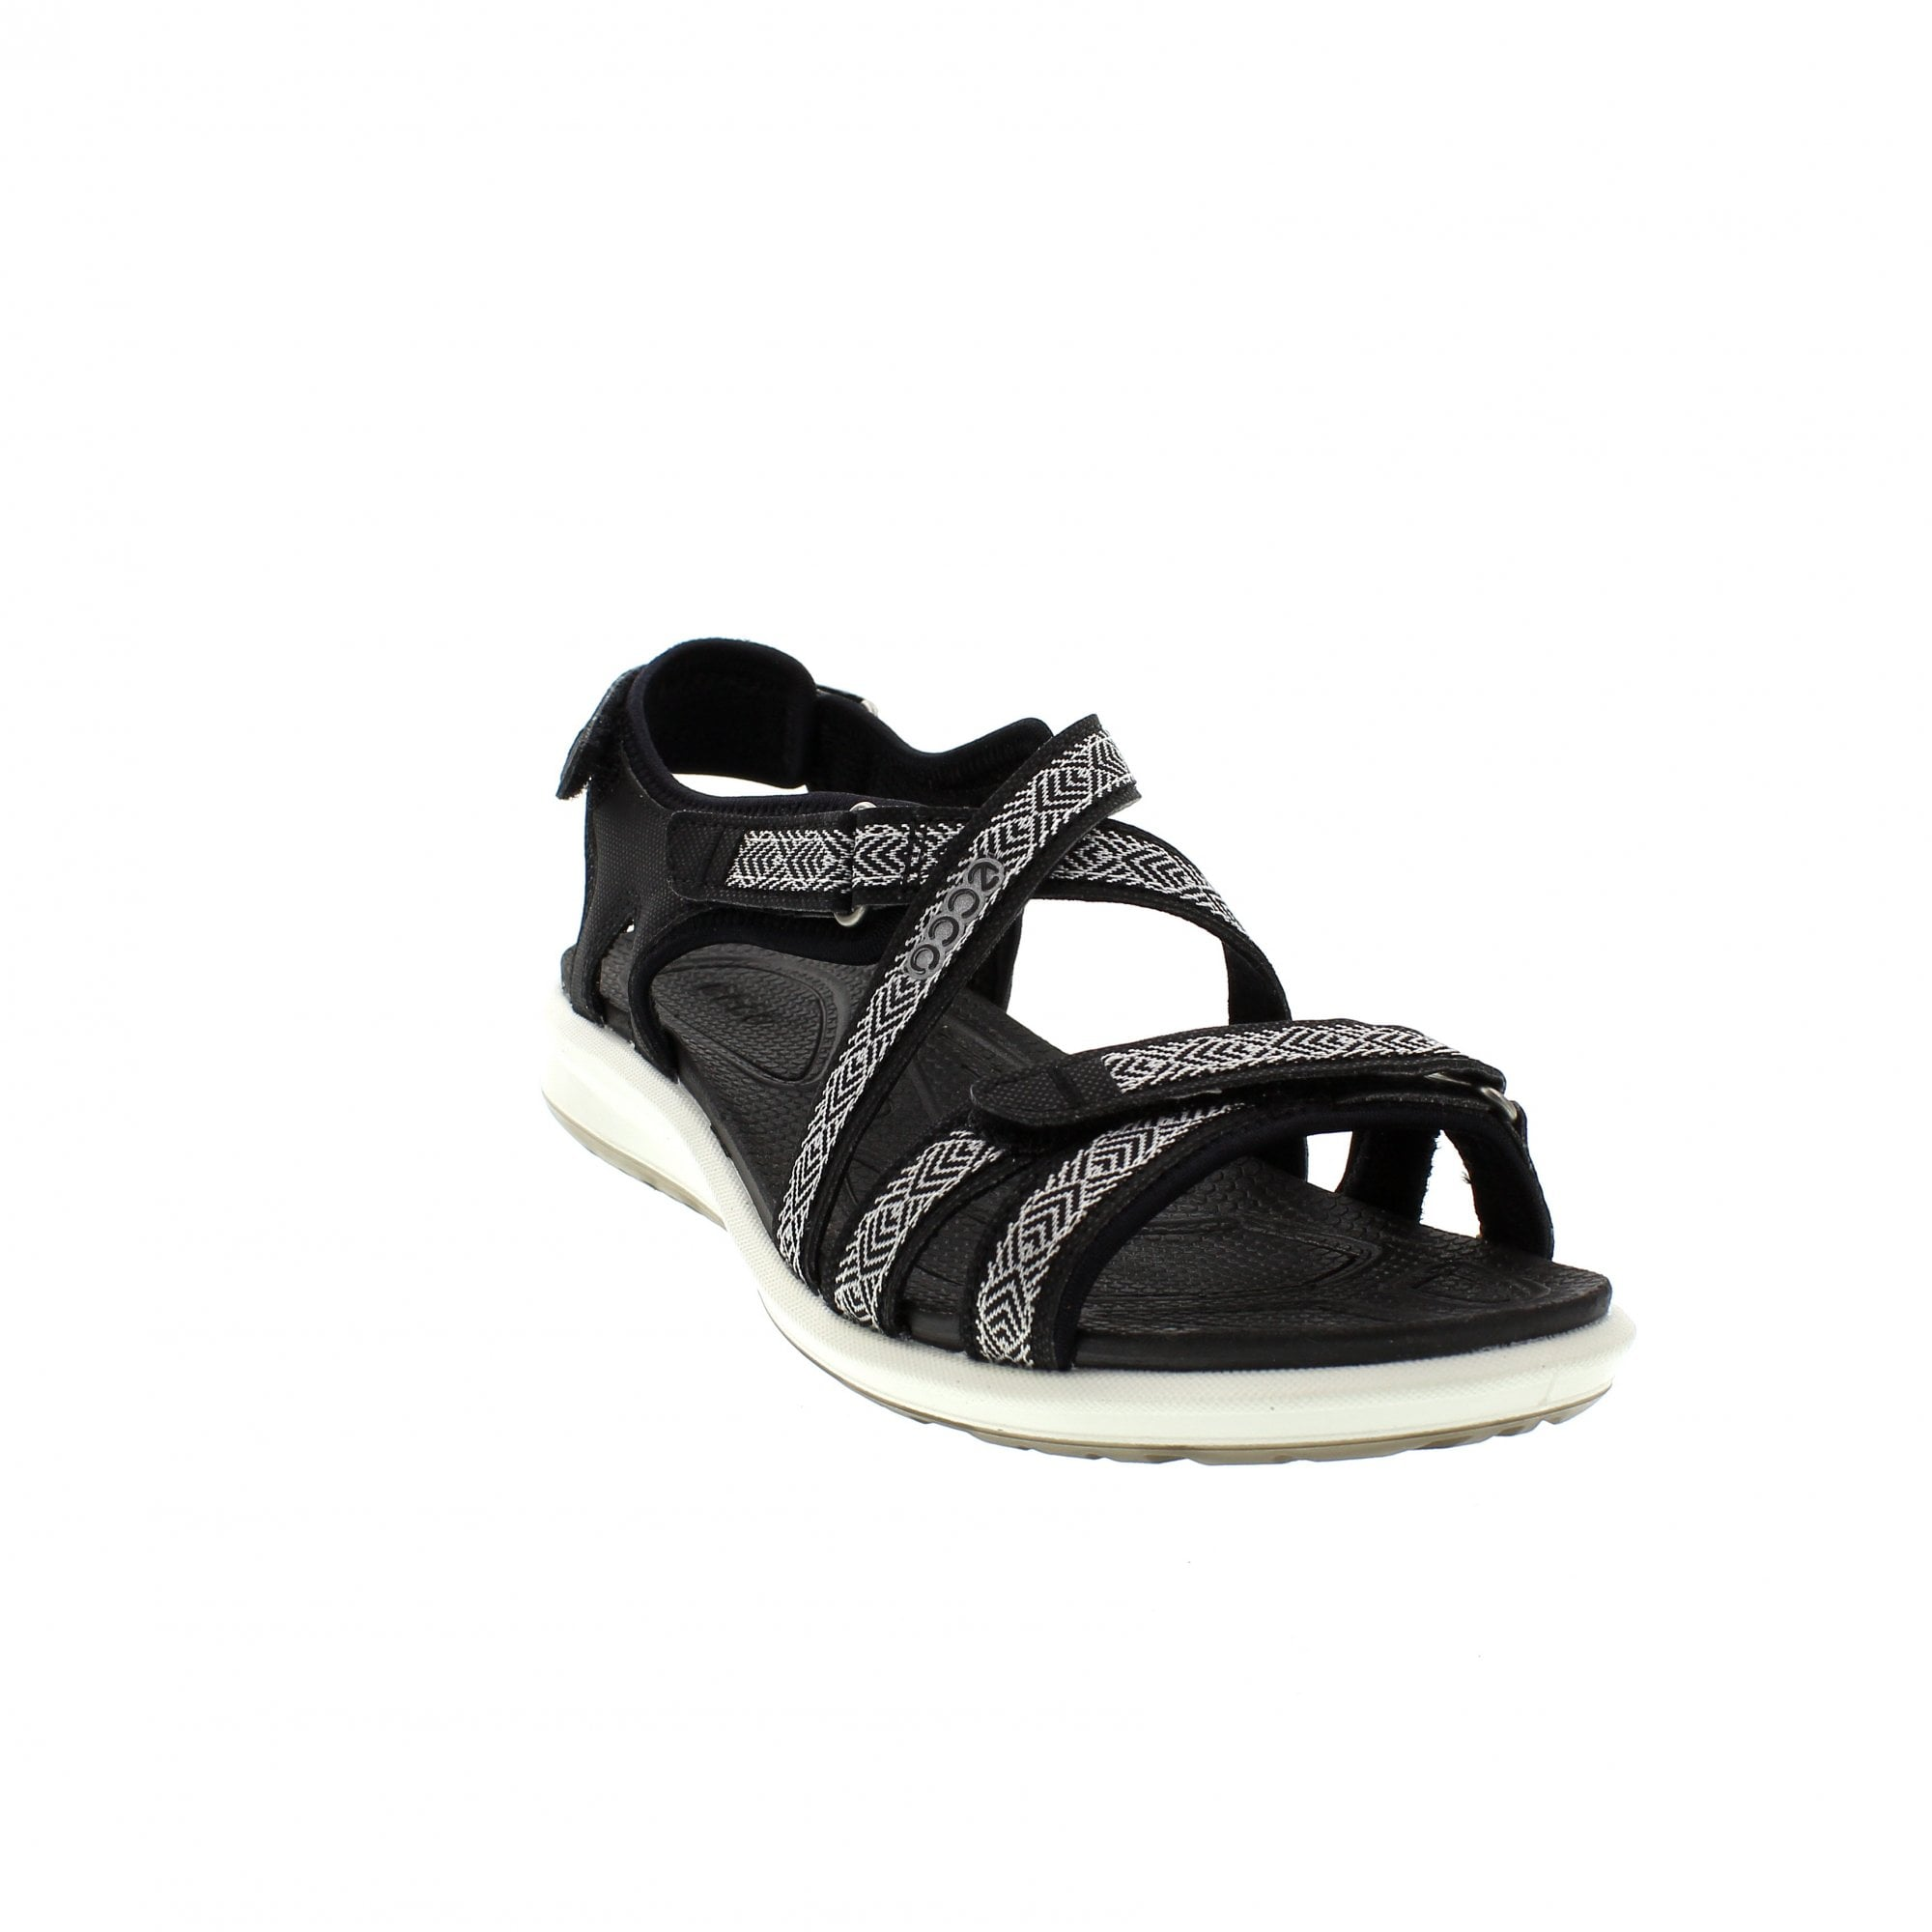 d0bafc8576ae Ecco Cruise 821853-00001 Womens Sandals